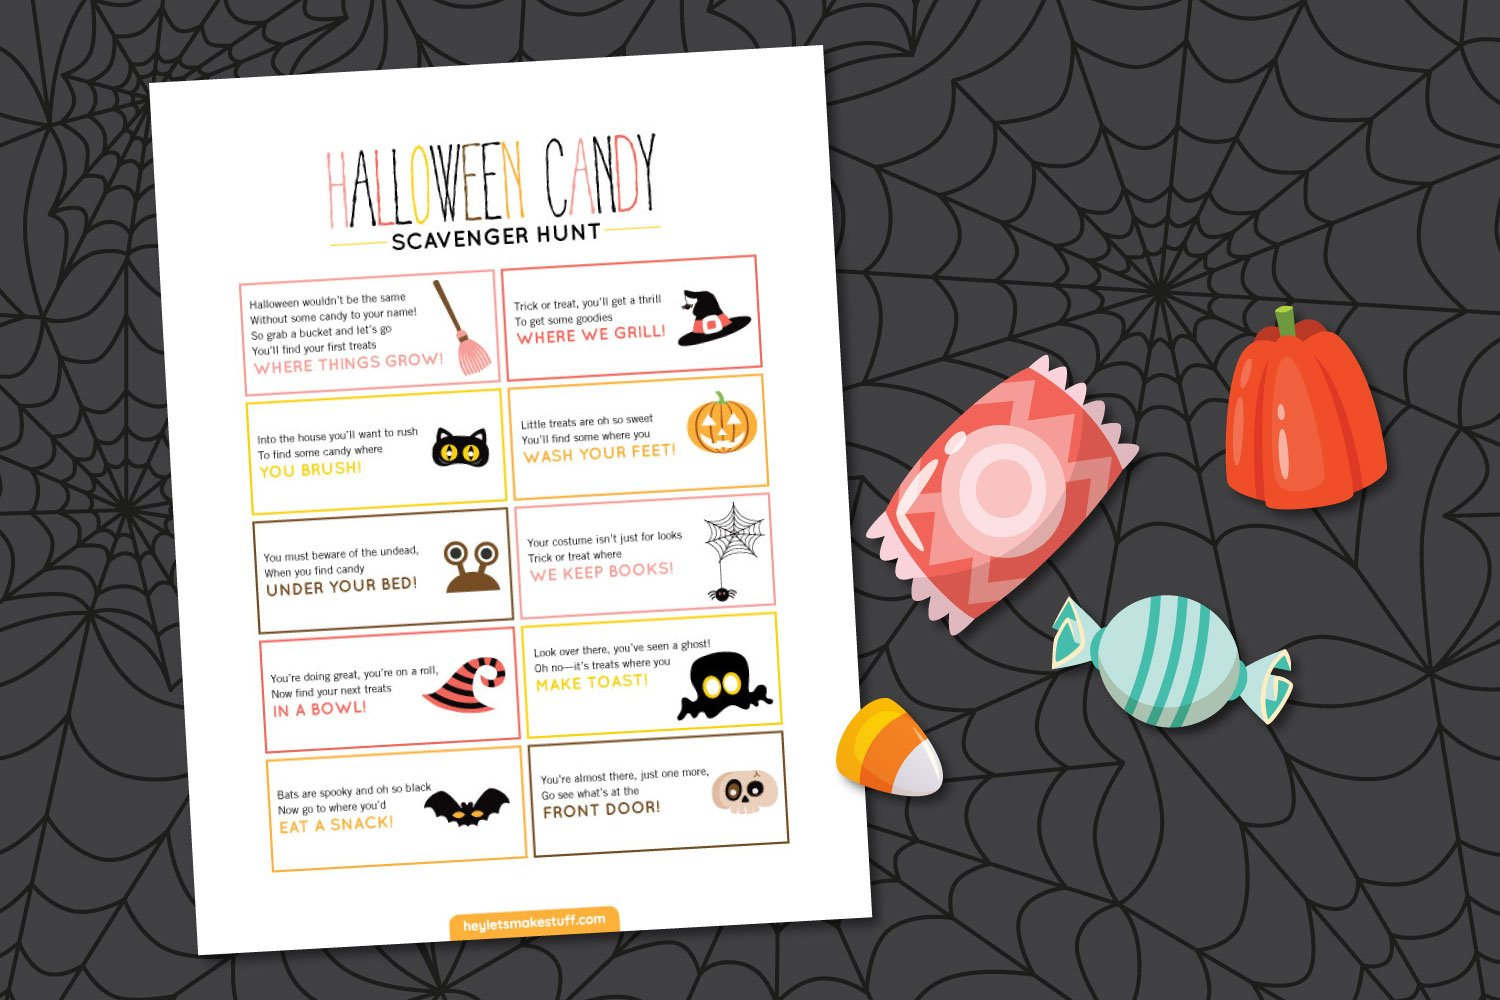 Halloween Candy Scavenger Hunt on a spider web background with candy